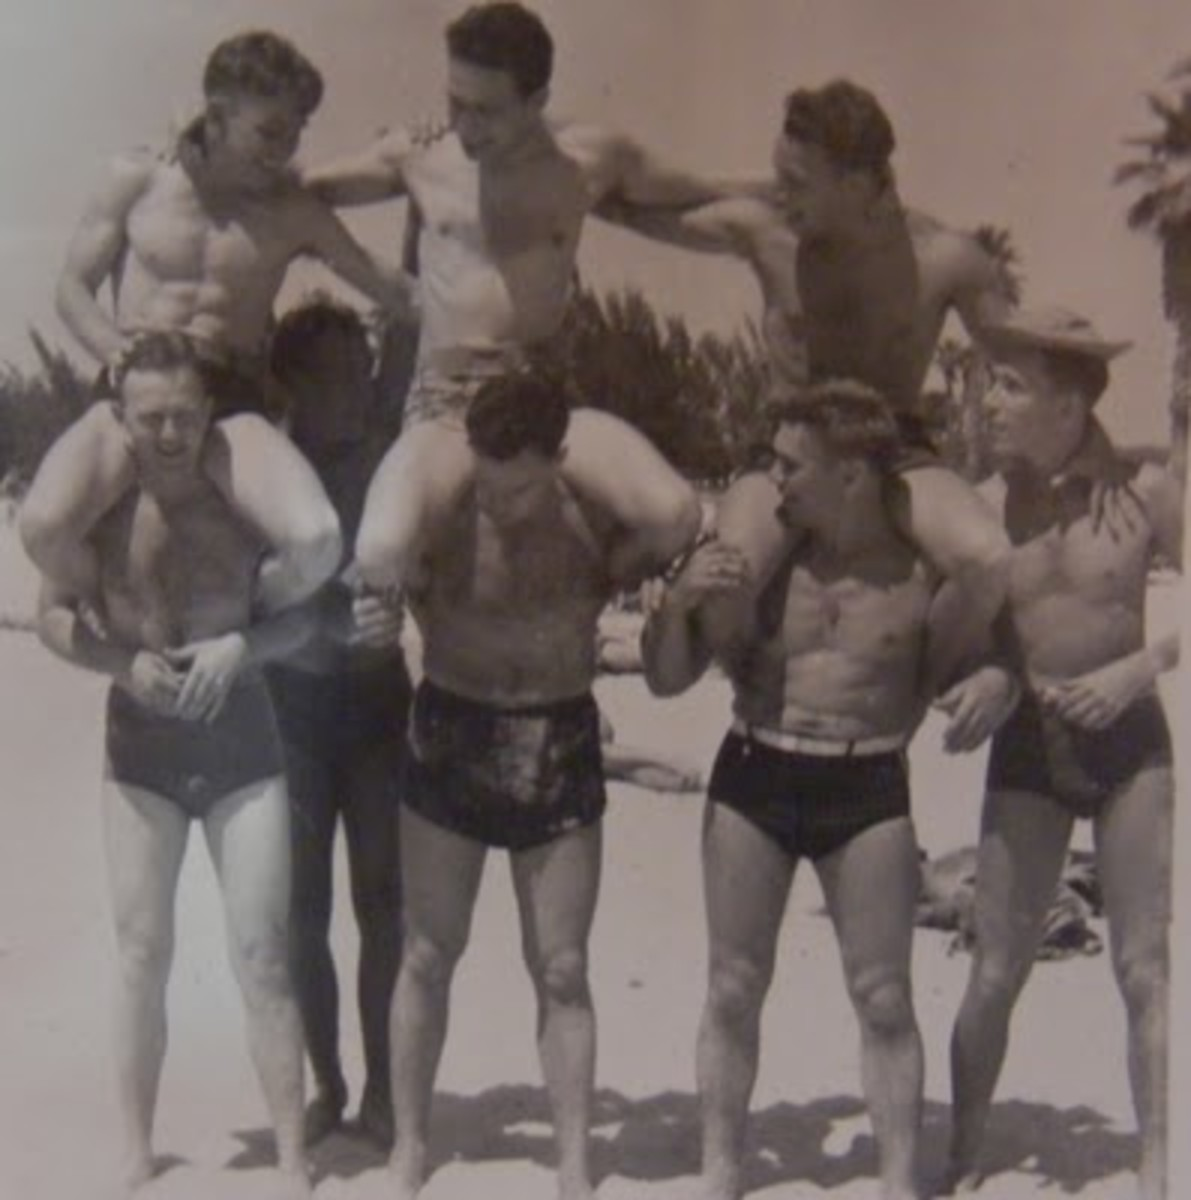 Back in those days, those surfer shorts did not exist; men could wear Speedos without having their sexuality thrown into question